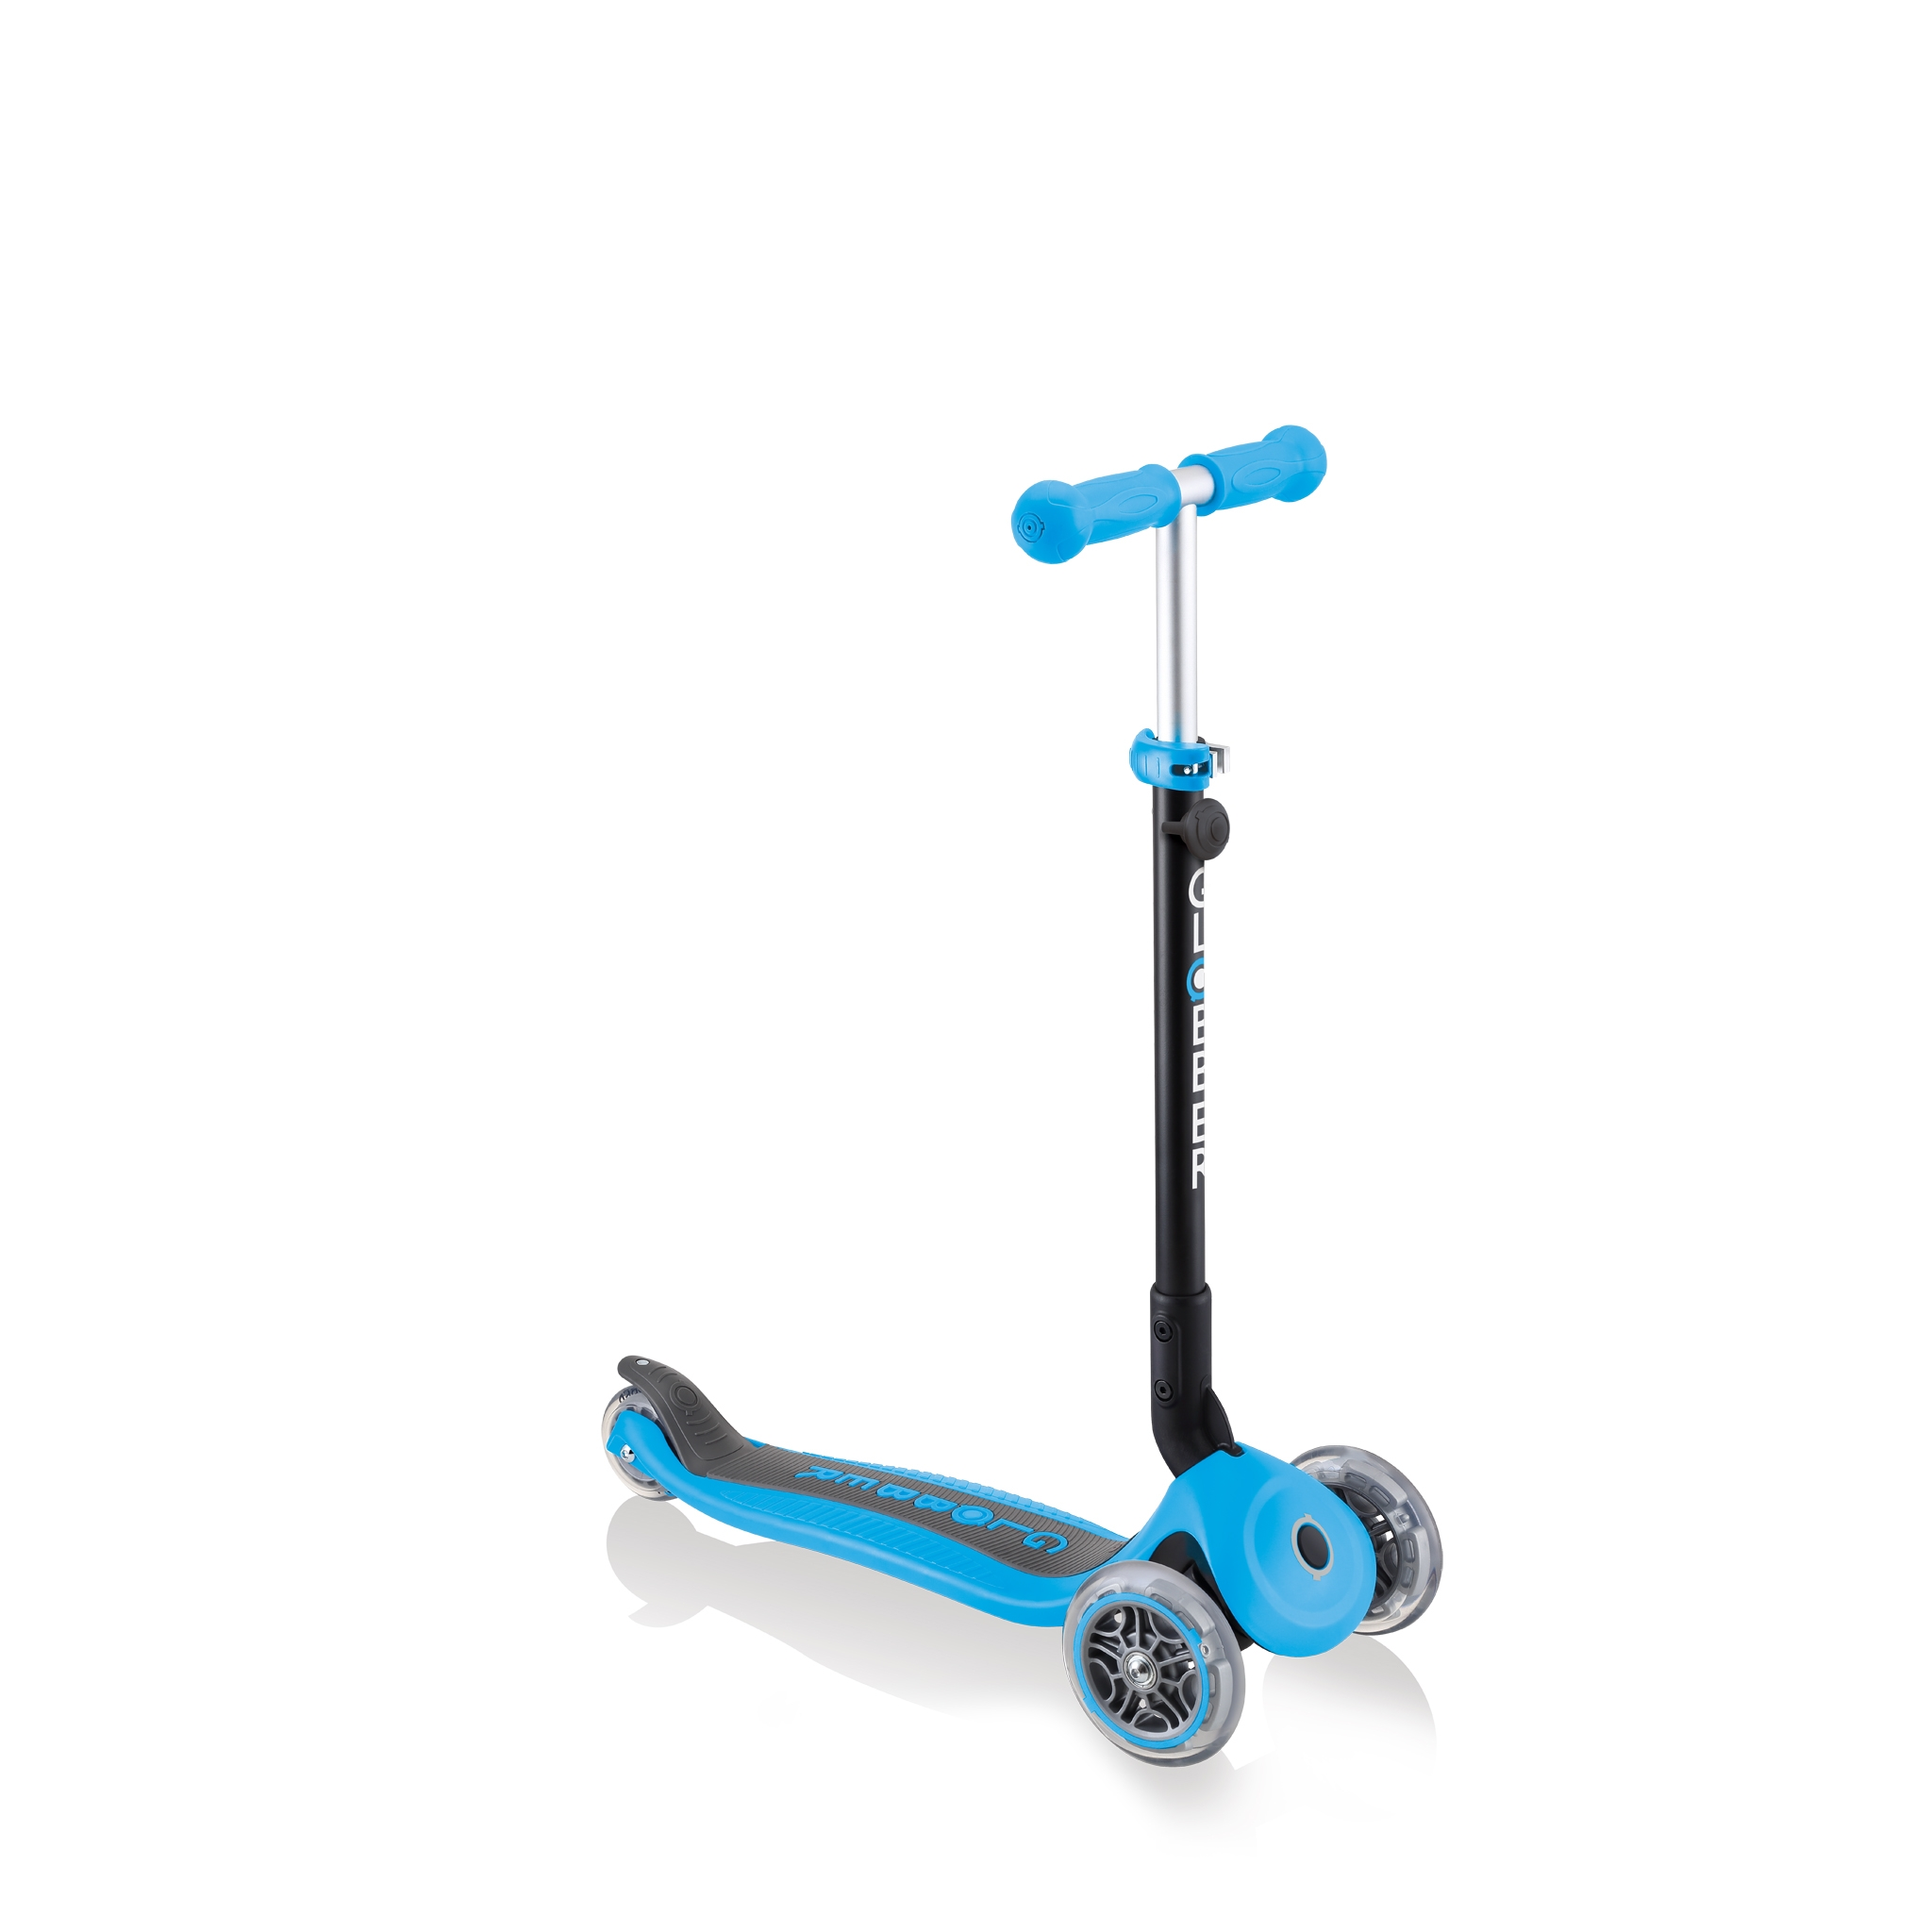 Globber-GO-UP-FOLDABLE-PLUS-3-in-1-scooter-for-toddlers-scooter-mode 2